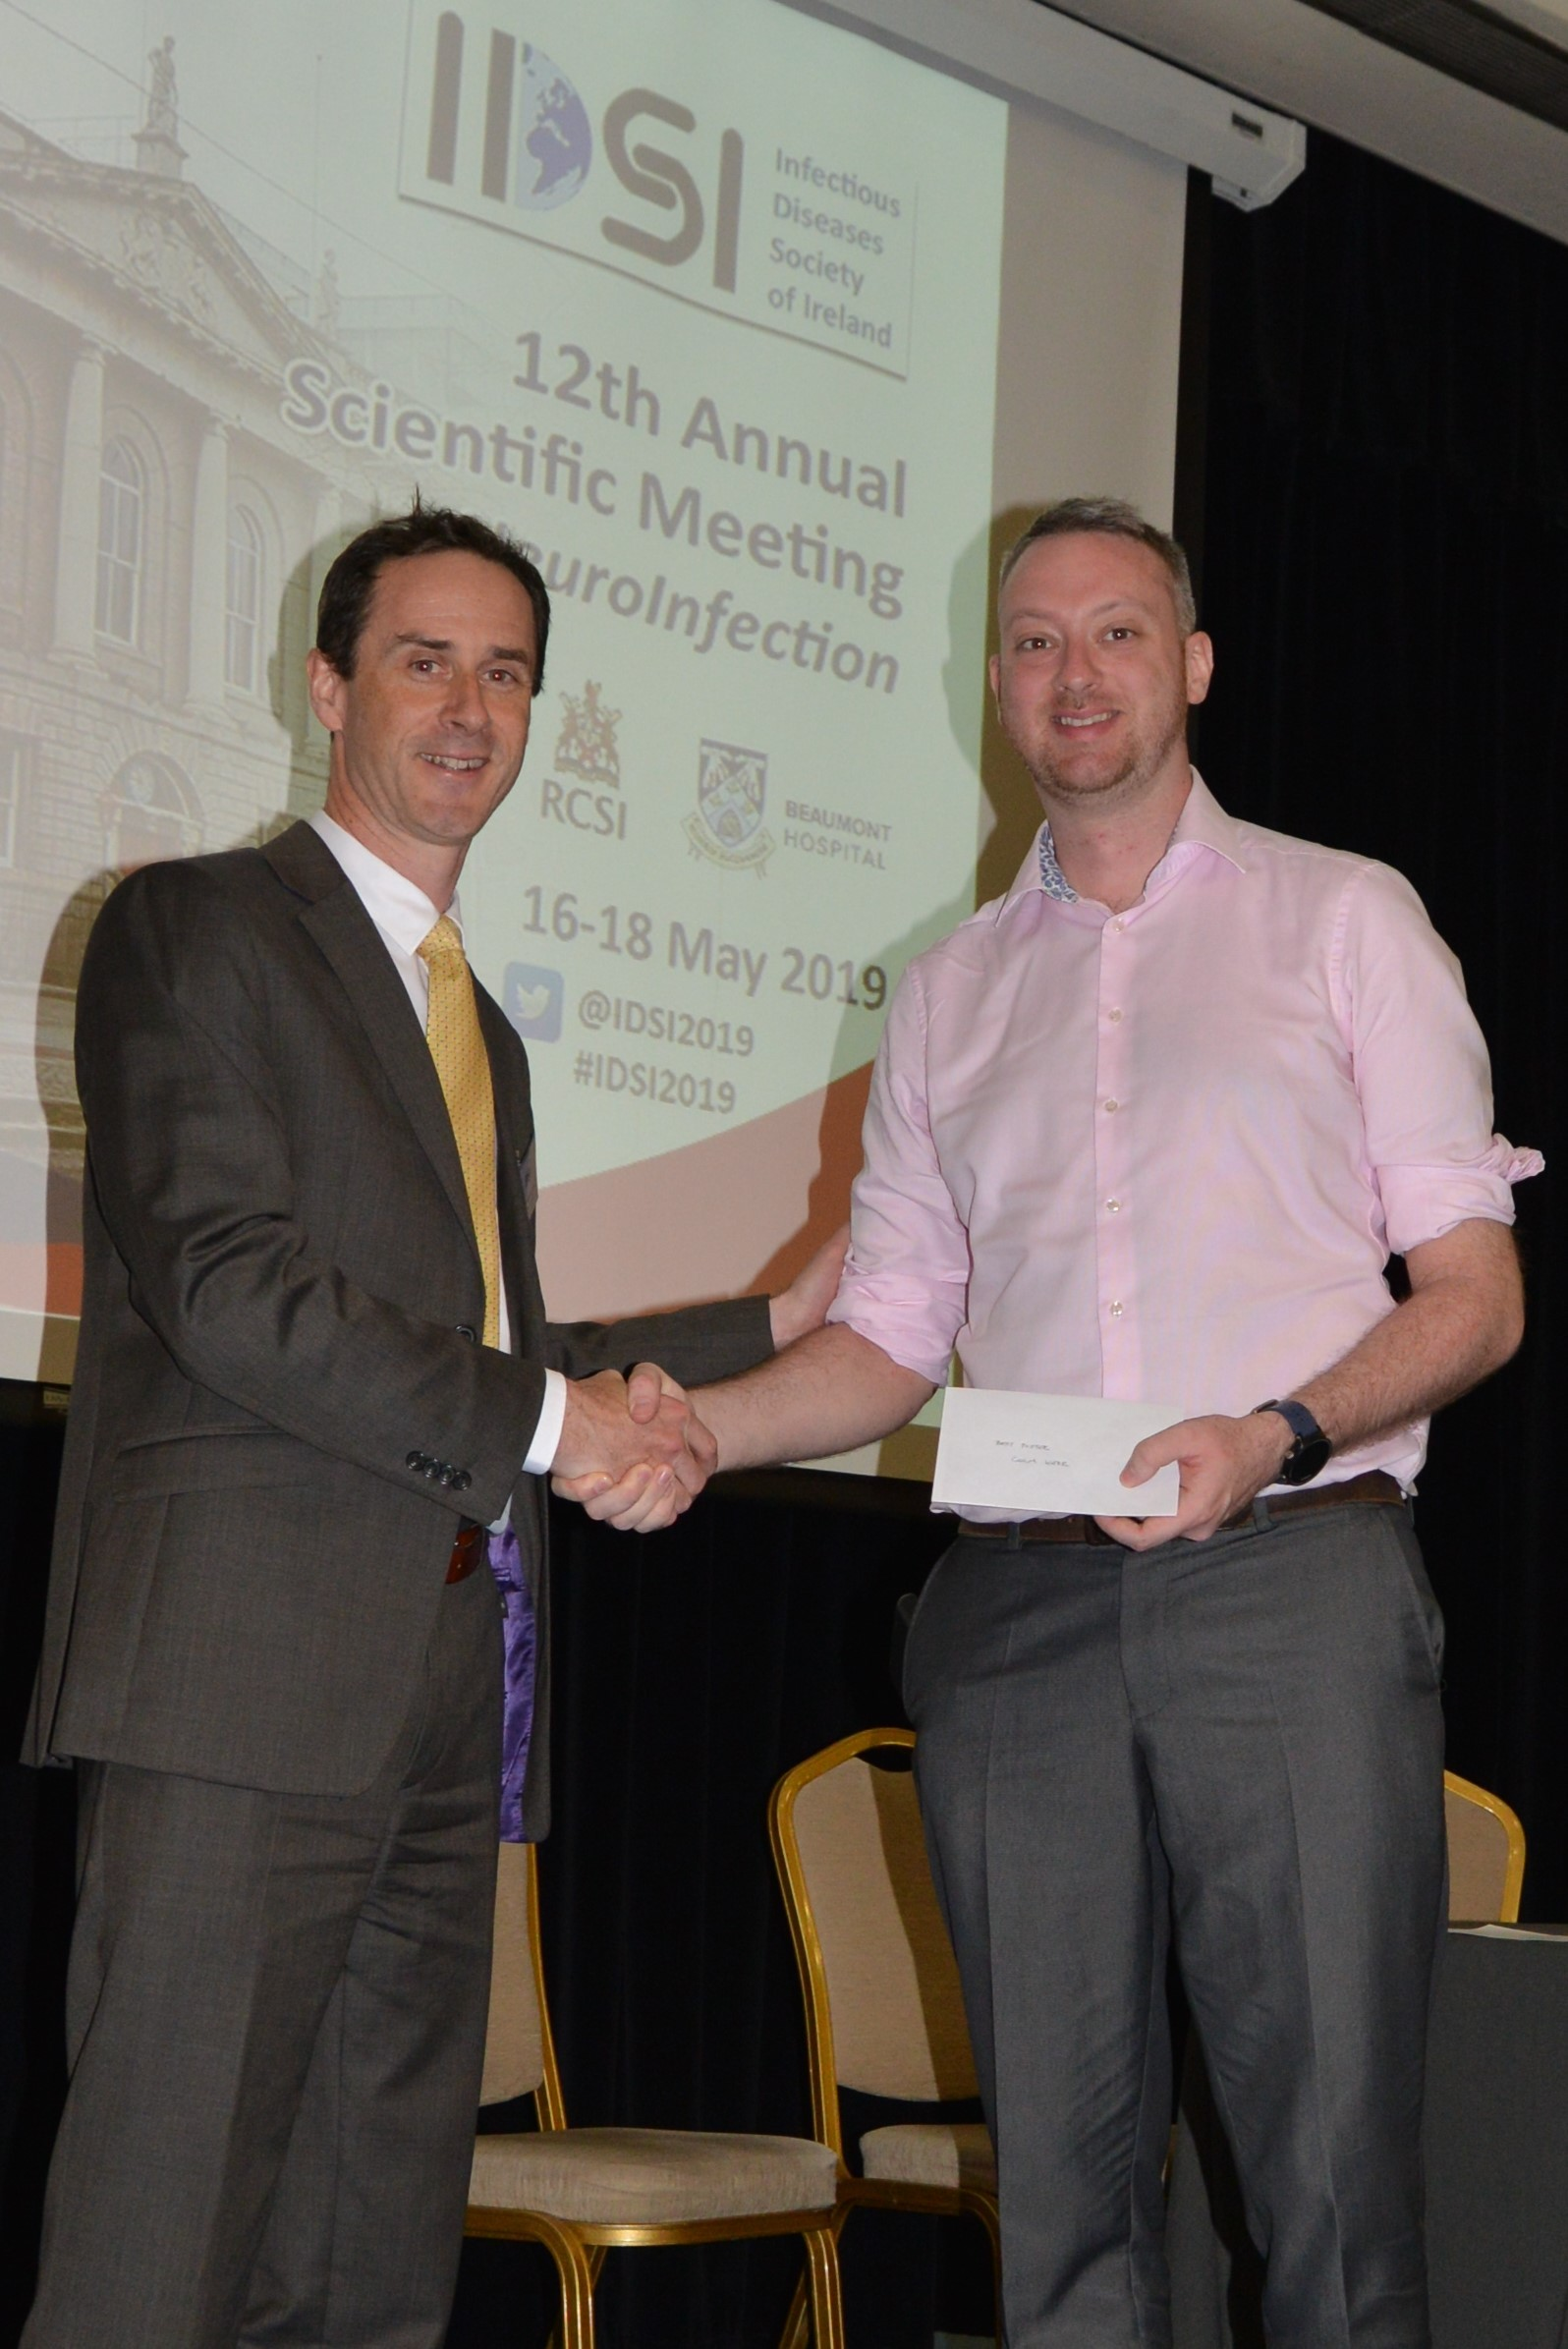 Eoghan de Barra presents Best Poster award to Colm Kerr